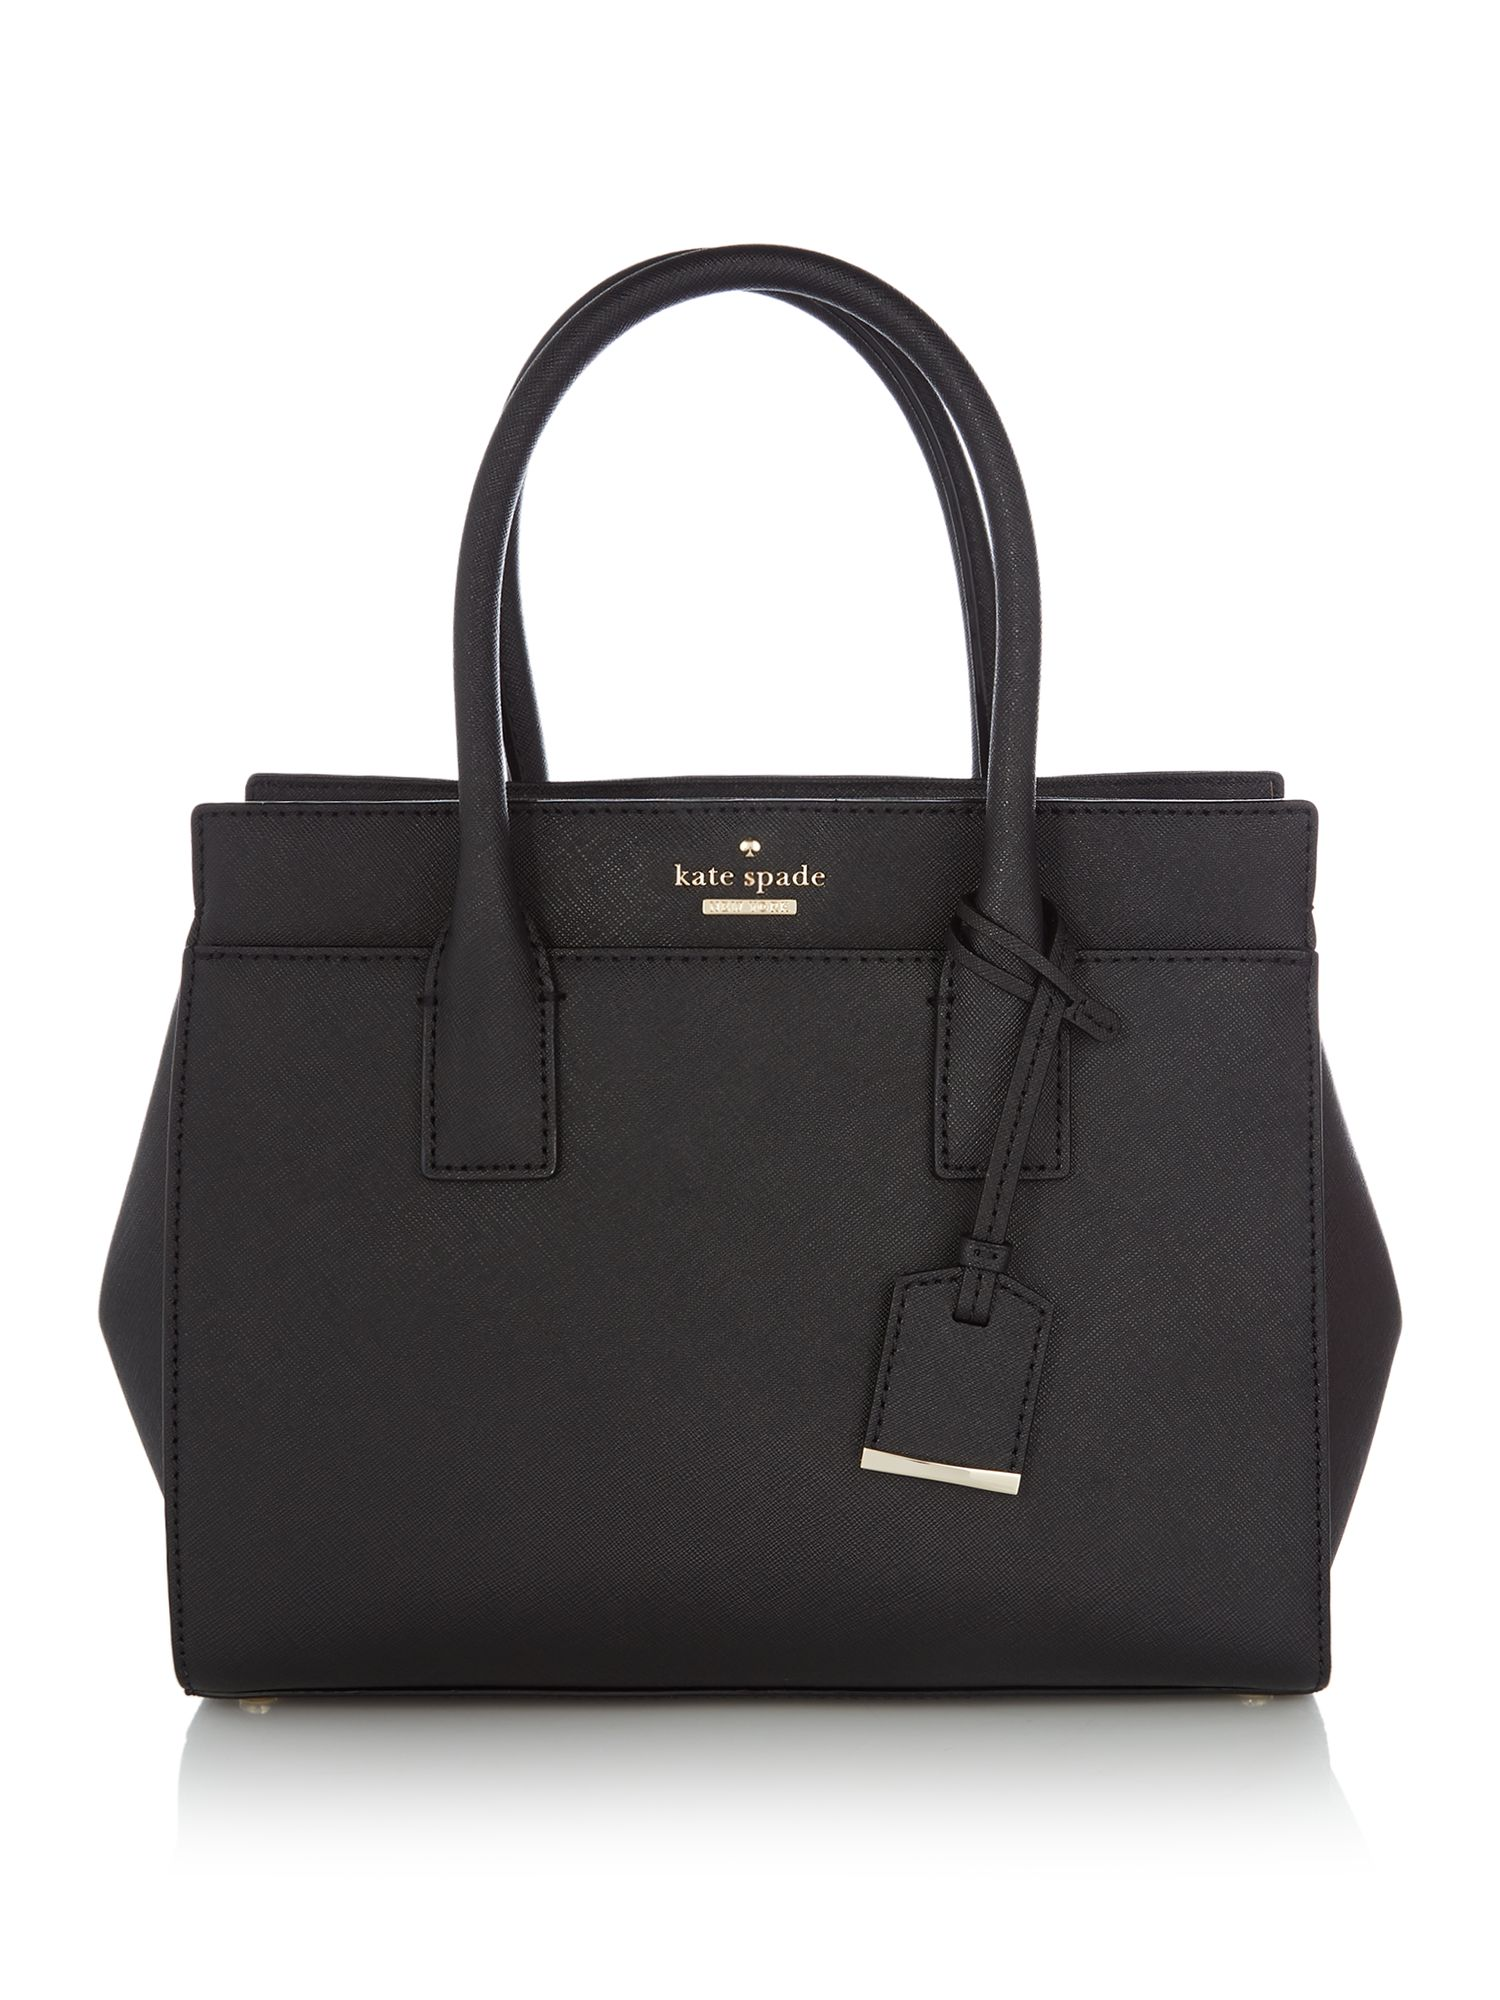 Kate Spade New York Cameron street small candace satchel, Black